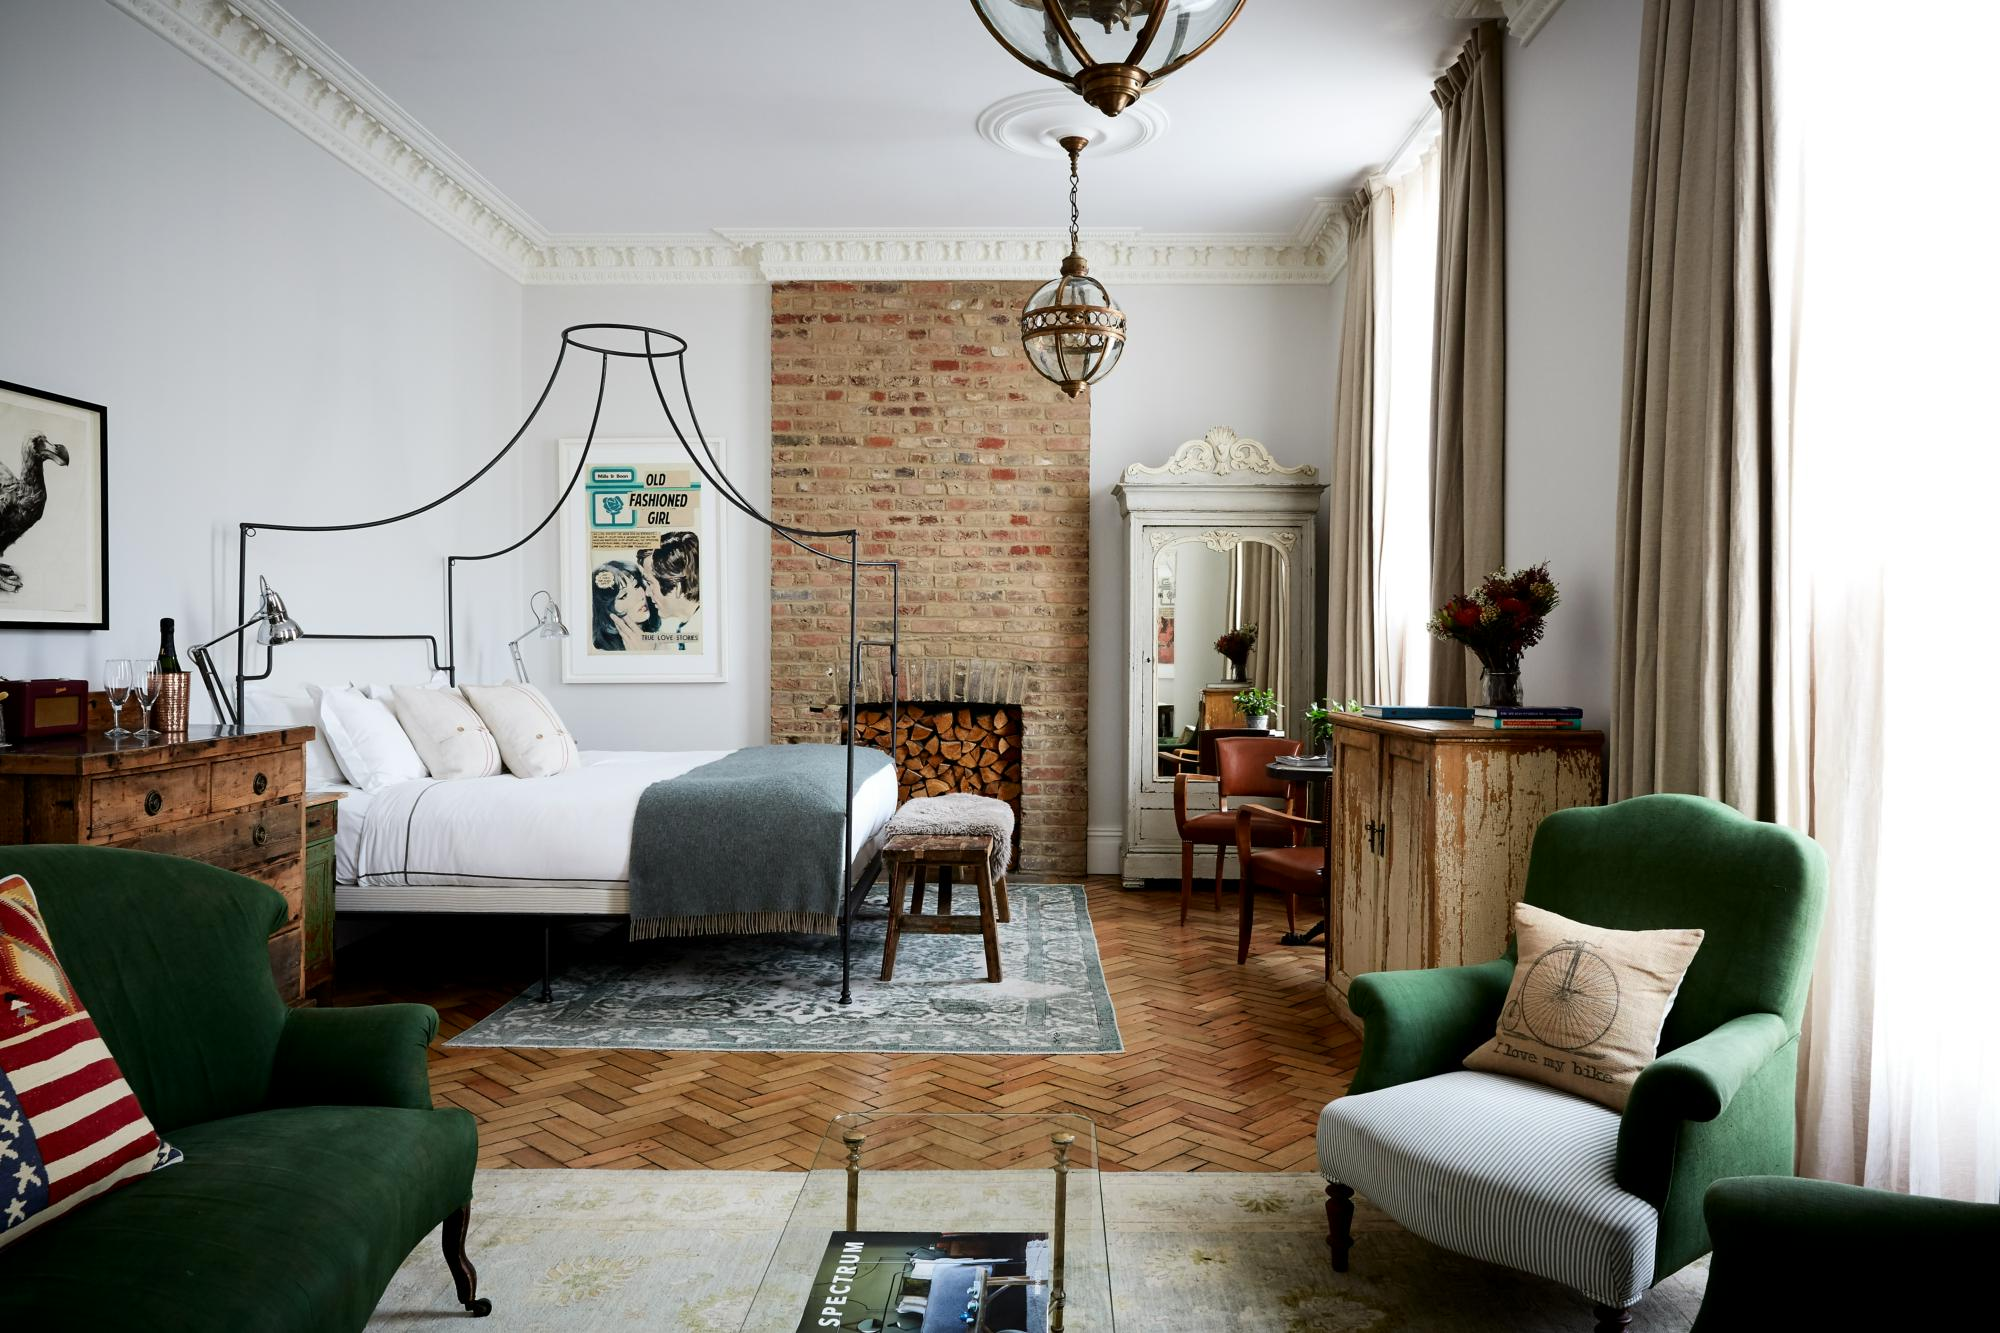 Hotels in Greater London holidays at Cool Places